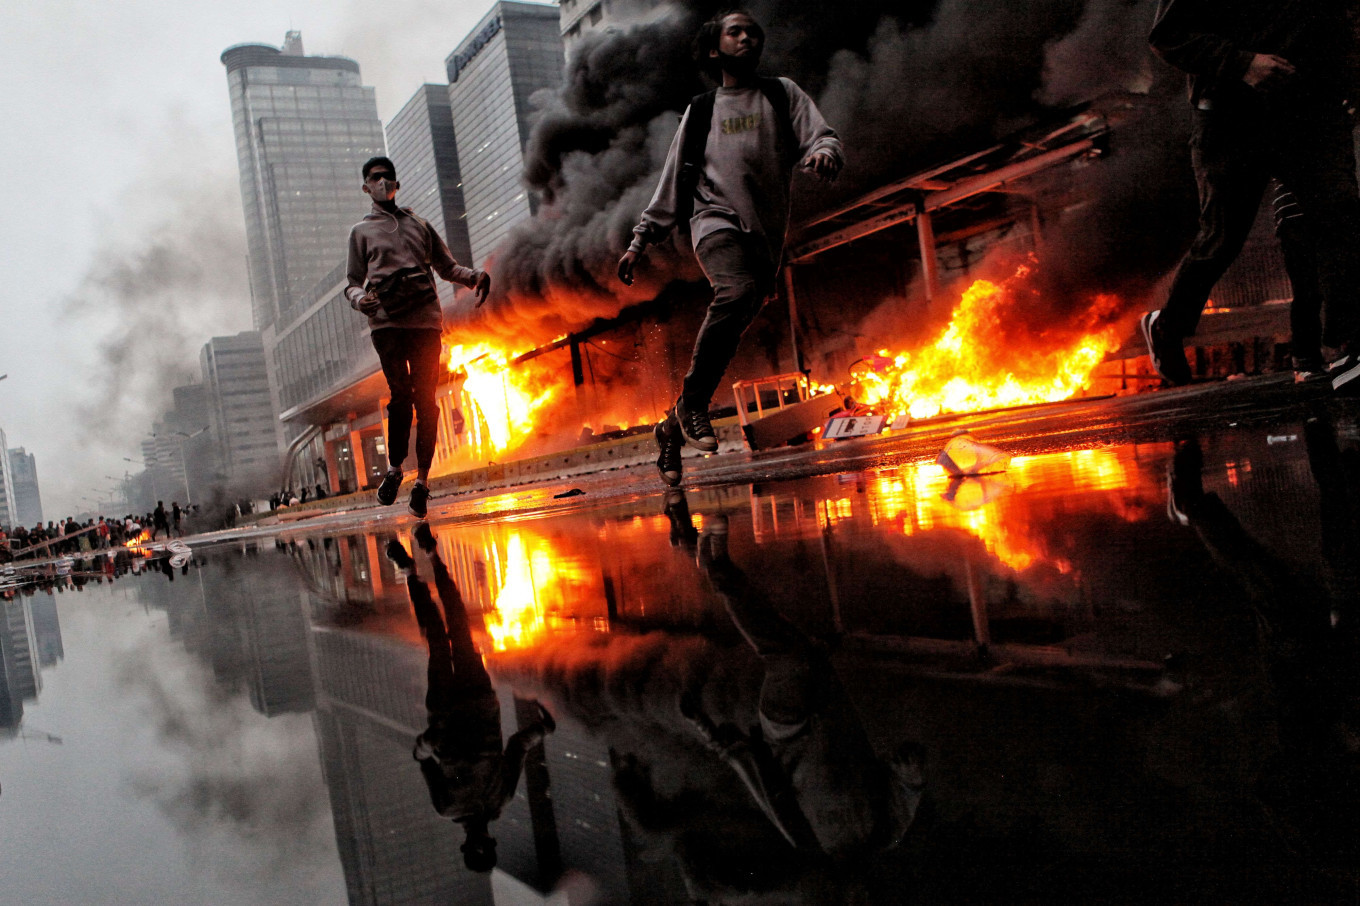 Up in flames: Protesters run past the Hotel Indonesia Transjakarta bus shelter in Central Jakarta as it is engulfed by a fire during a demonstration on Thursday, October 8. 2020 that turned violent. Nationwide demonstrations since Tuesday have demanded the immediate revocation of the Job Creation Law. JP/Seto Wardhana